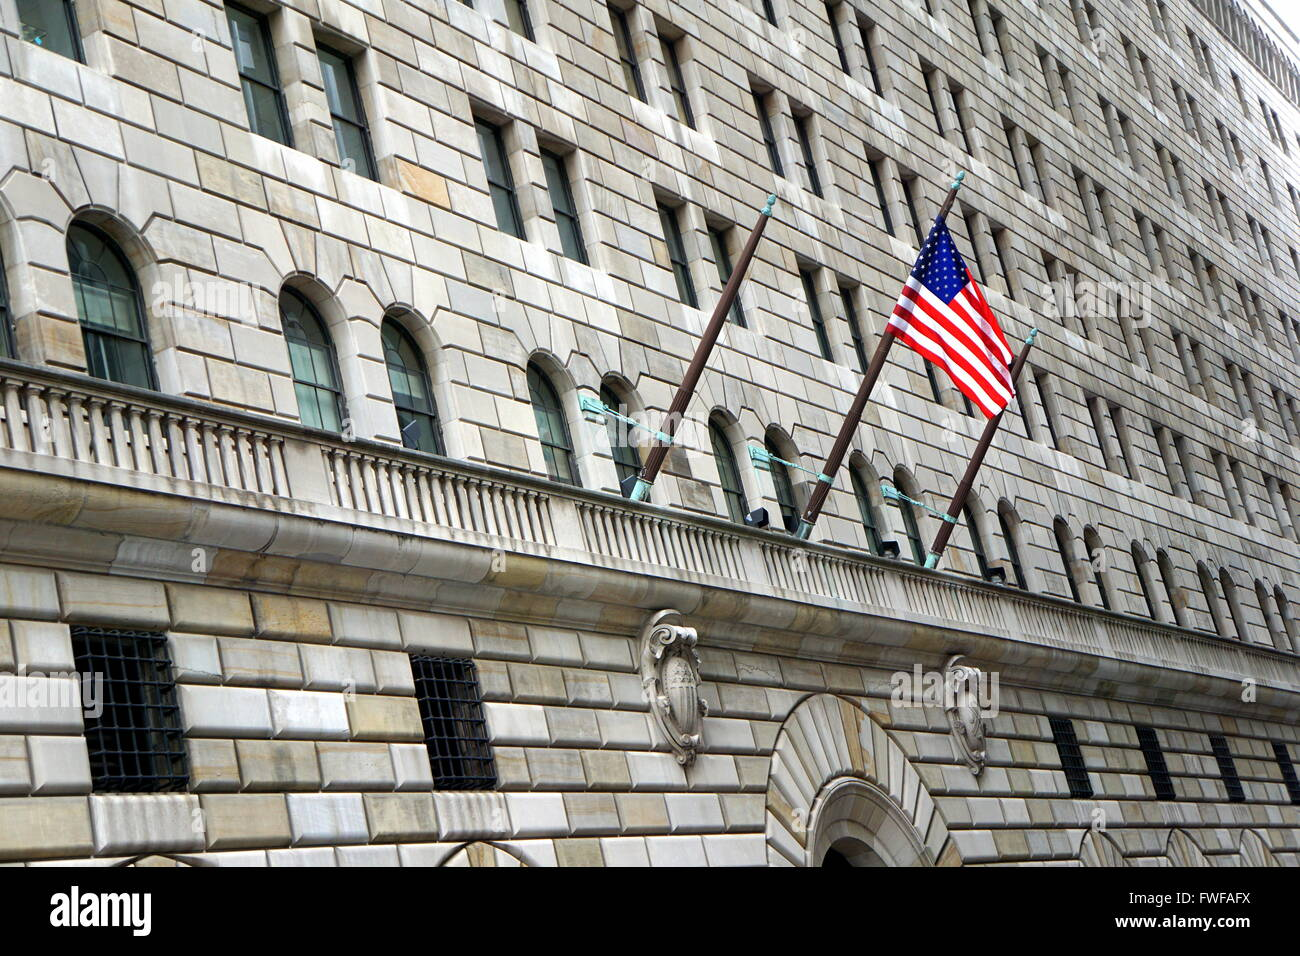 Federal Reserve Bank of New York, New York City, NY, USA